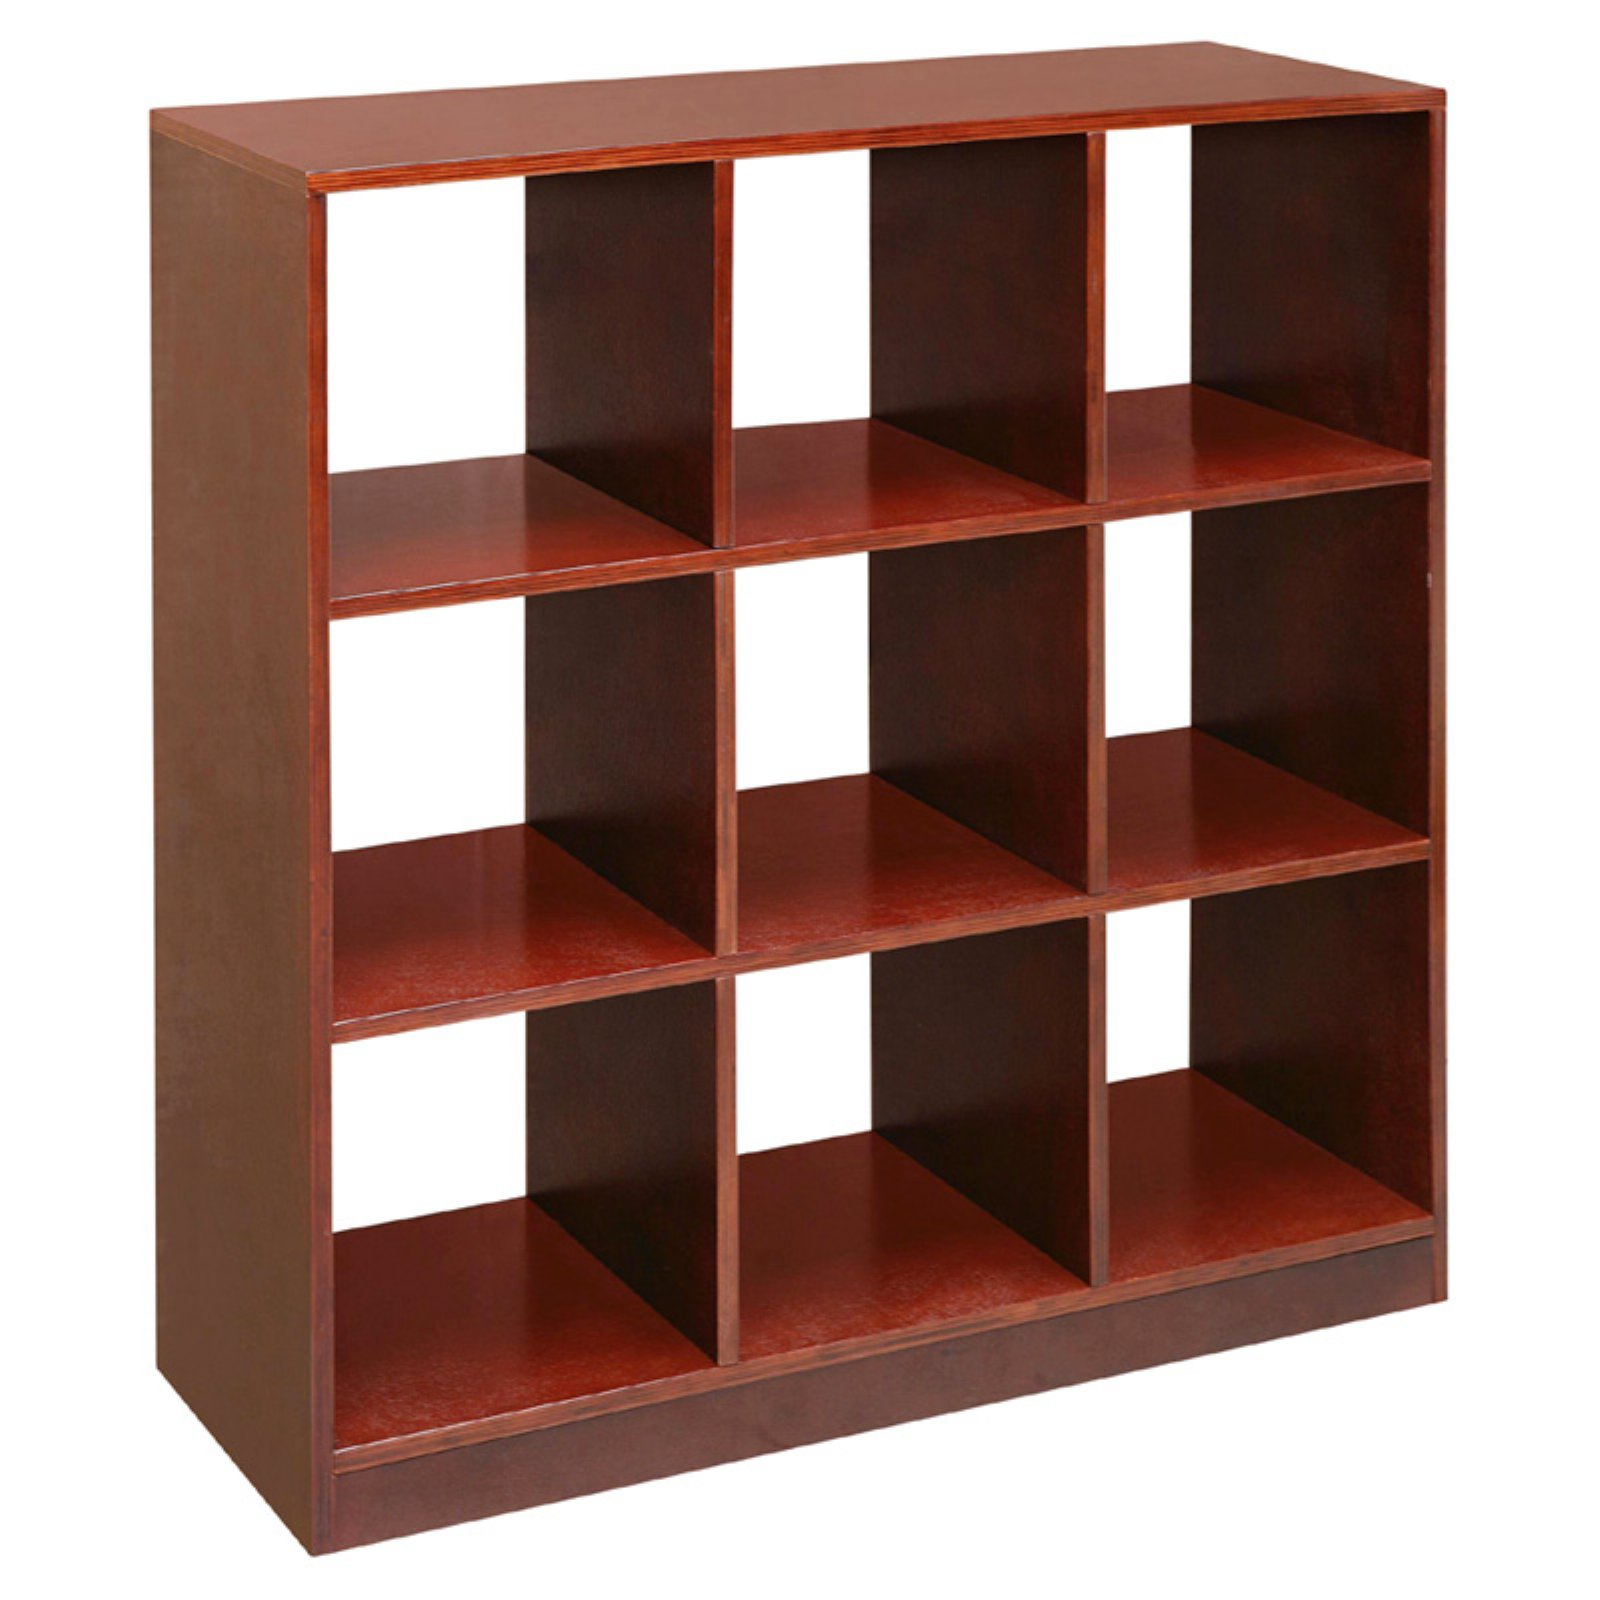 Badger Basket 9 Cubby Storage Unit, Cherry by Badger Basket